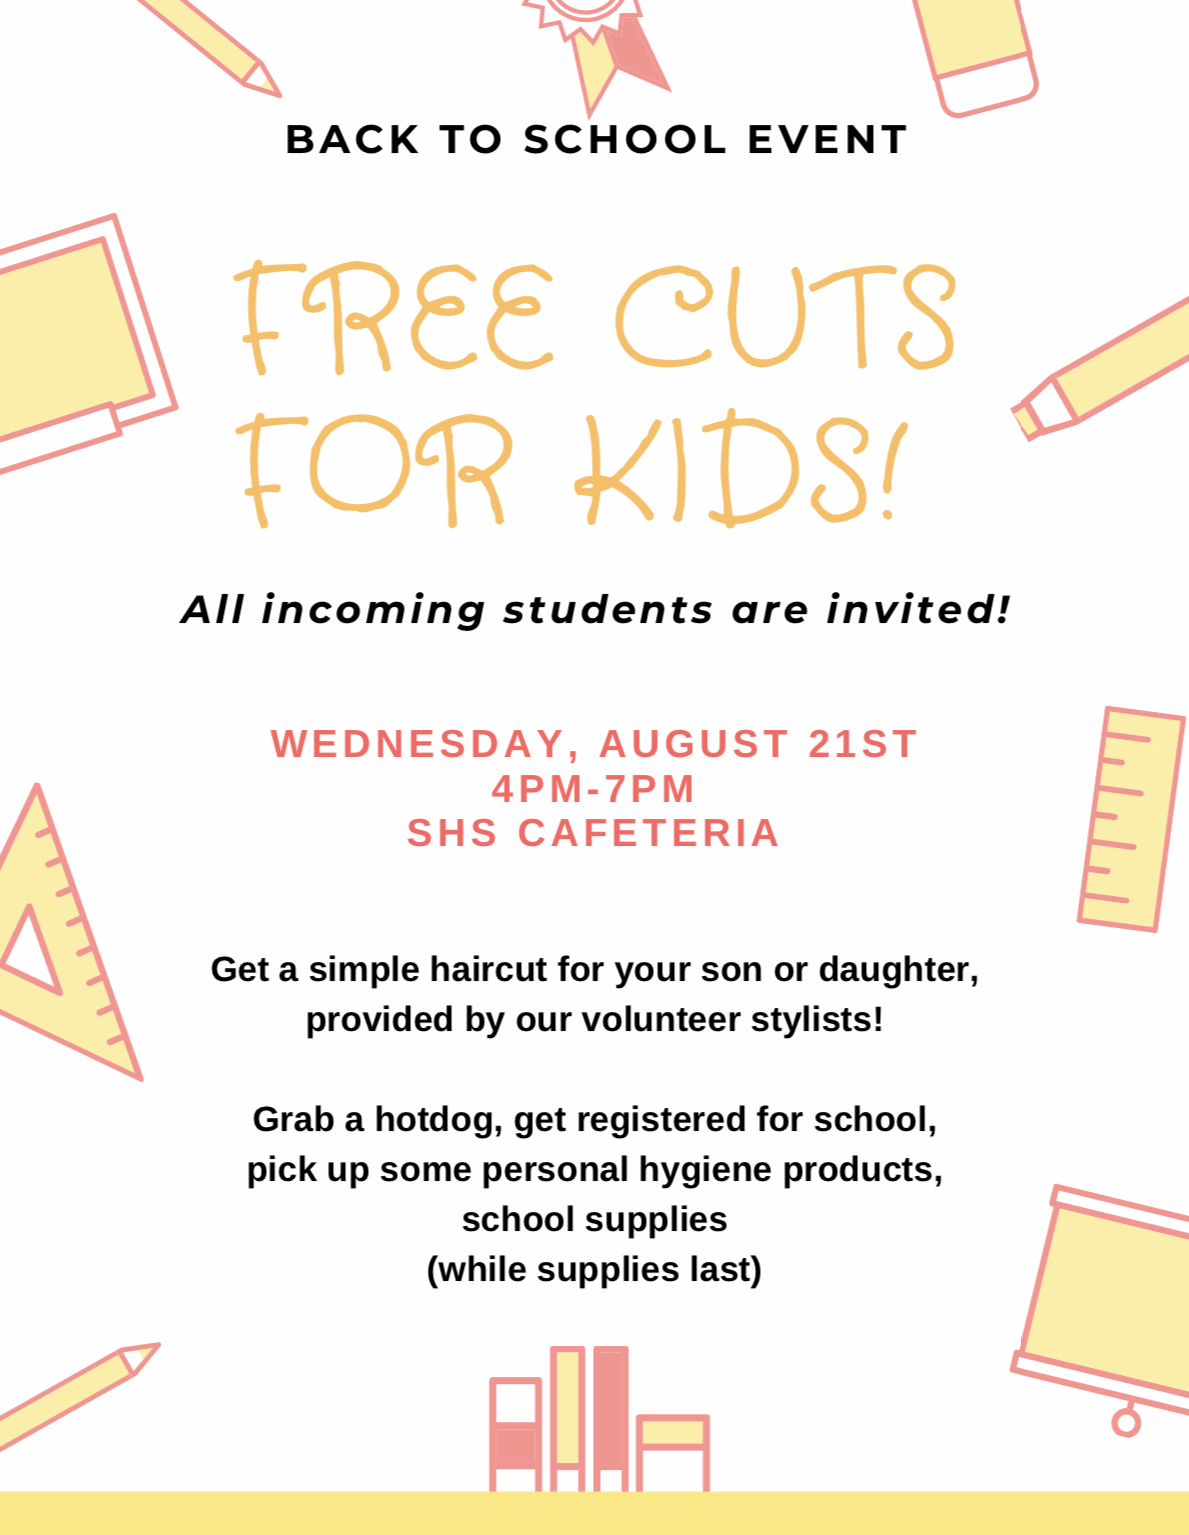 Free Cuts For Kids Image